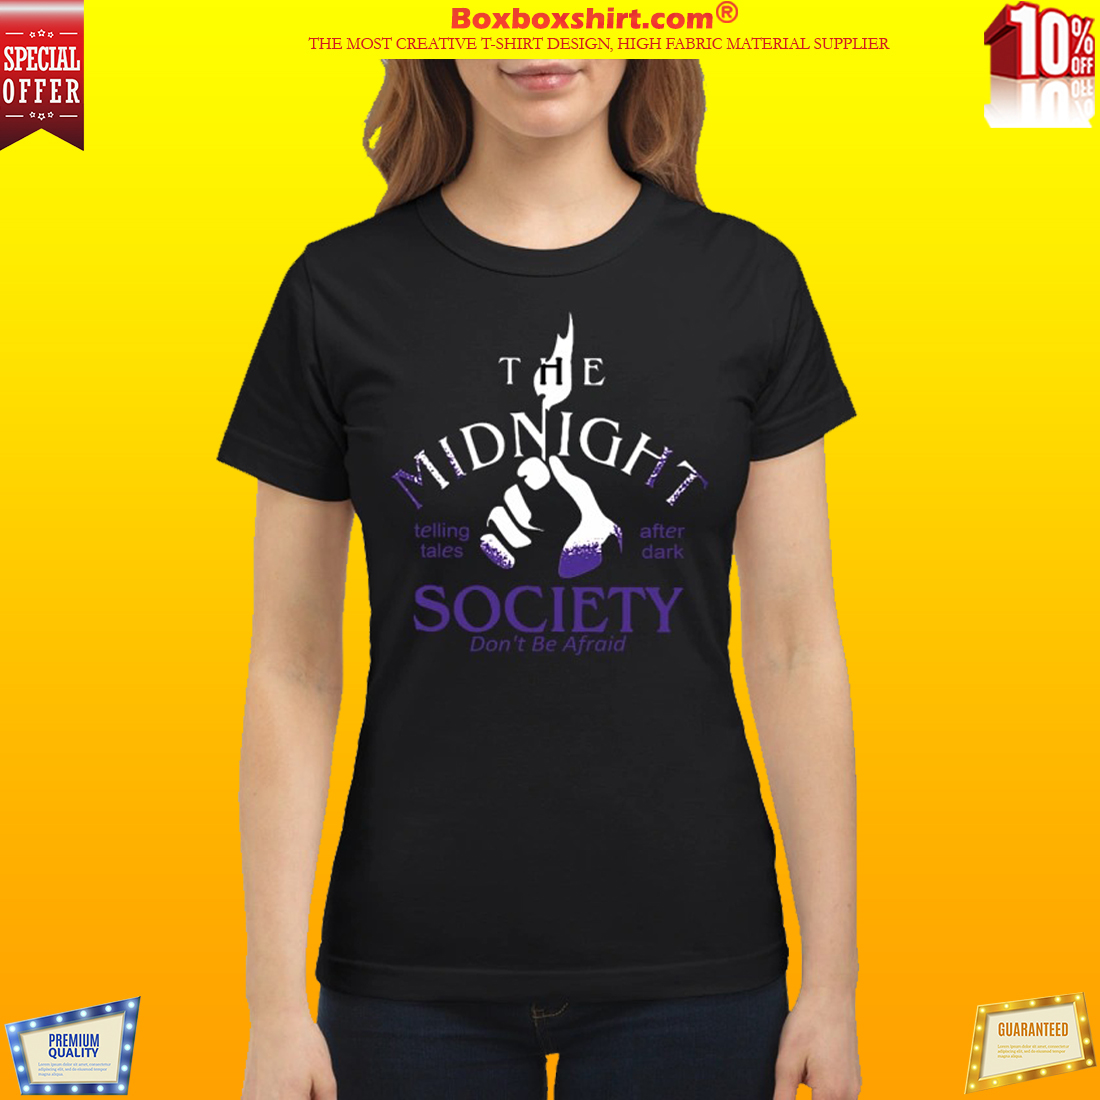 The midnight society don't be afraid after dark classic shirt